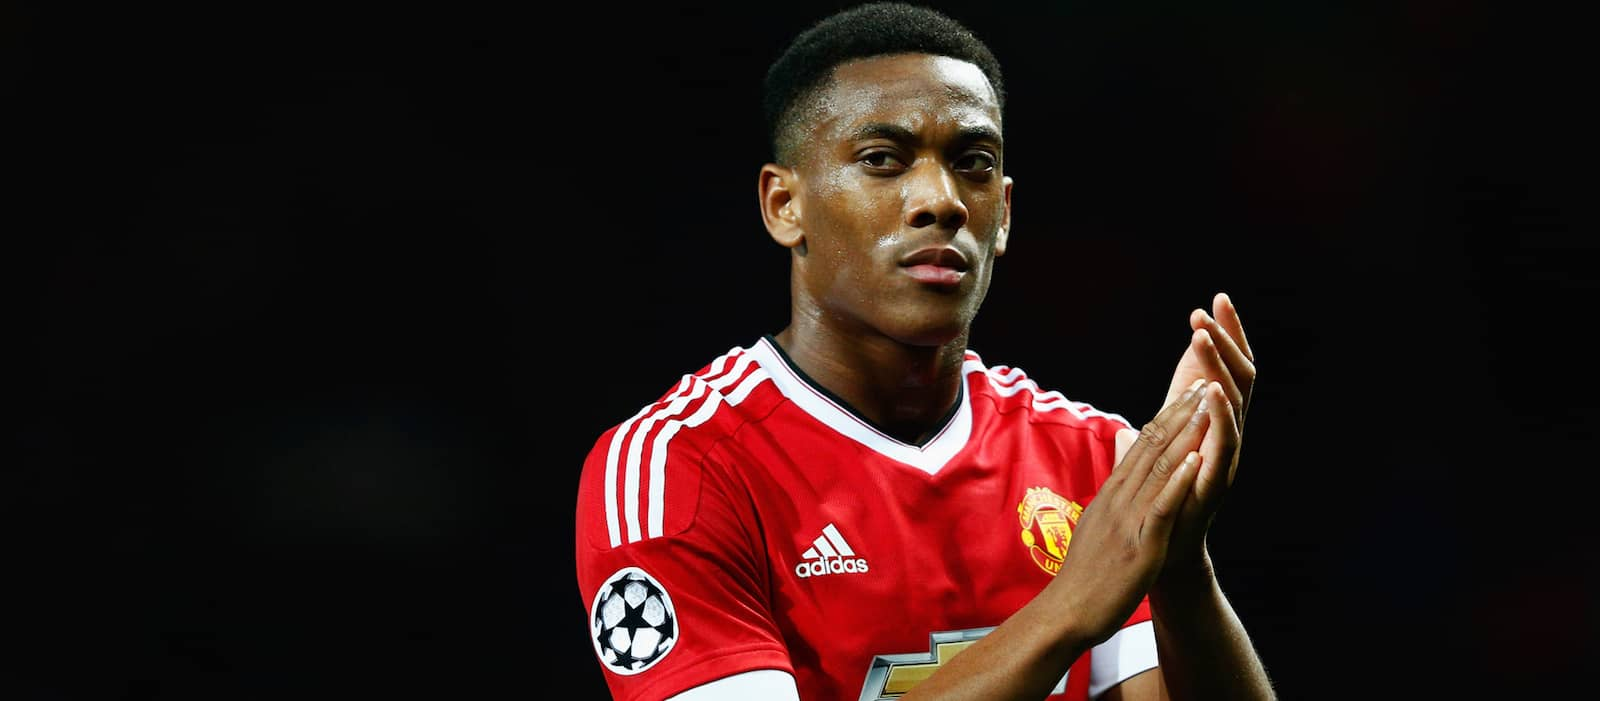 Manchester United fans delighted with Anthony Martial's performance against Bournemouth